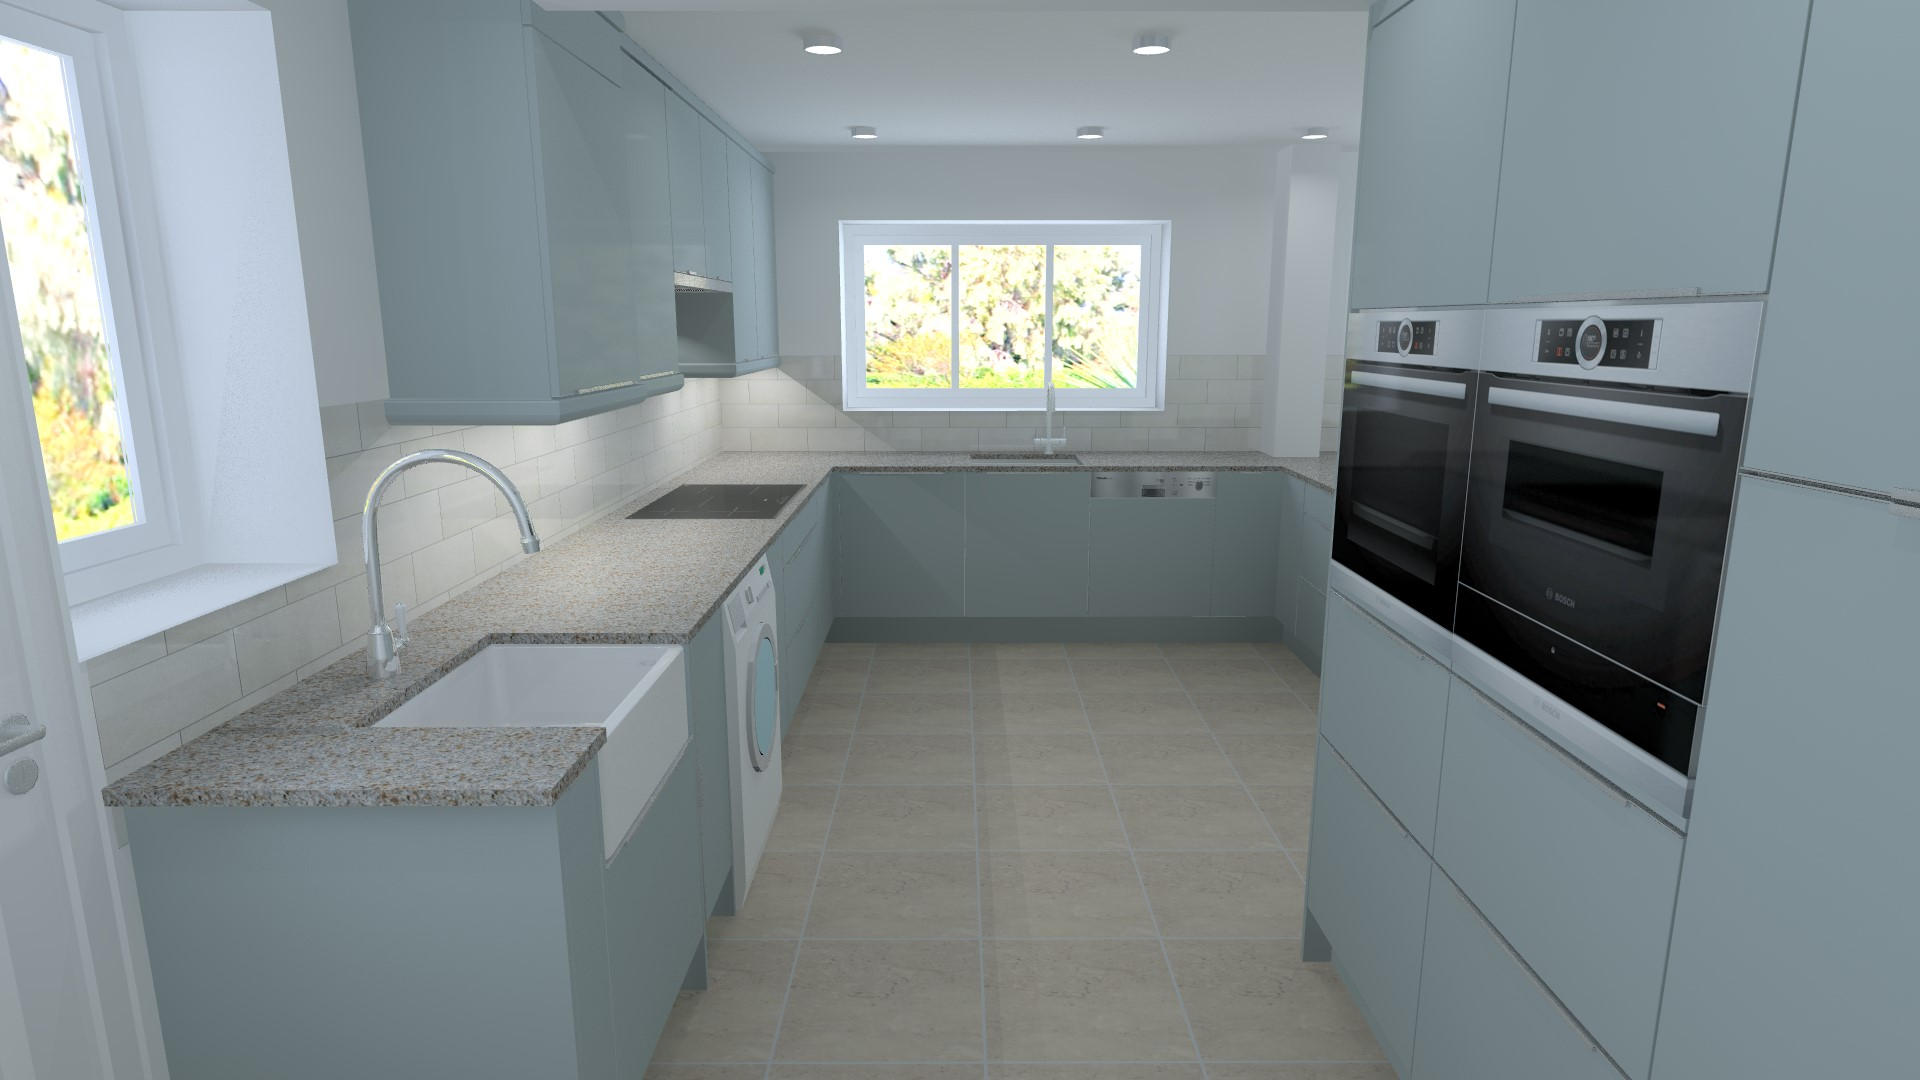 Mr and Mrs Hill Final Revised Kitchen Layout View 3.jpg